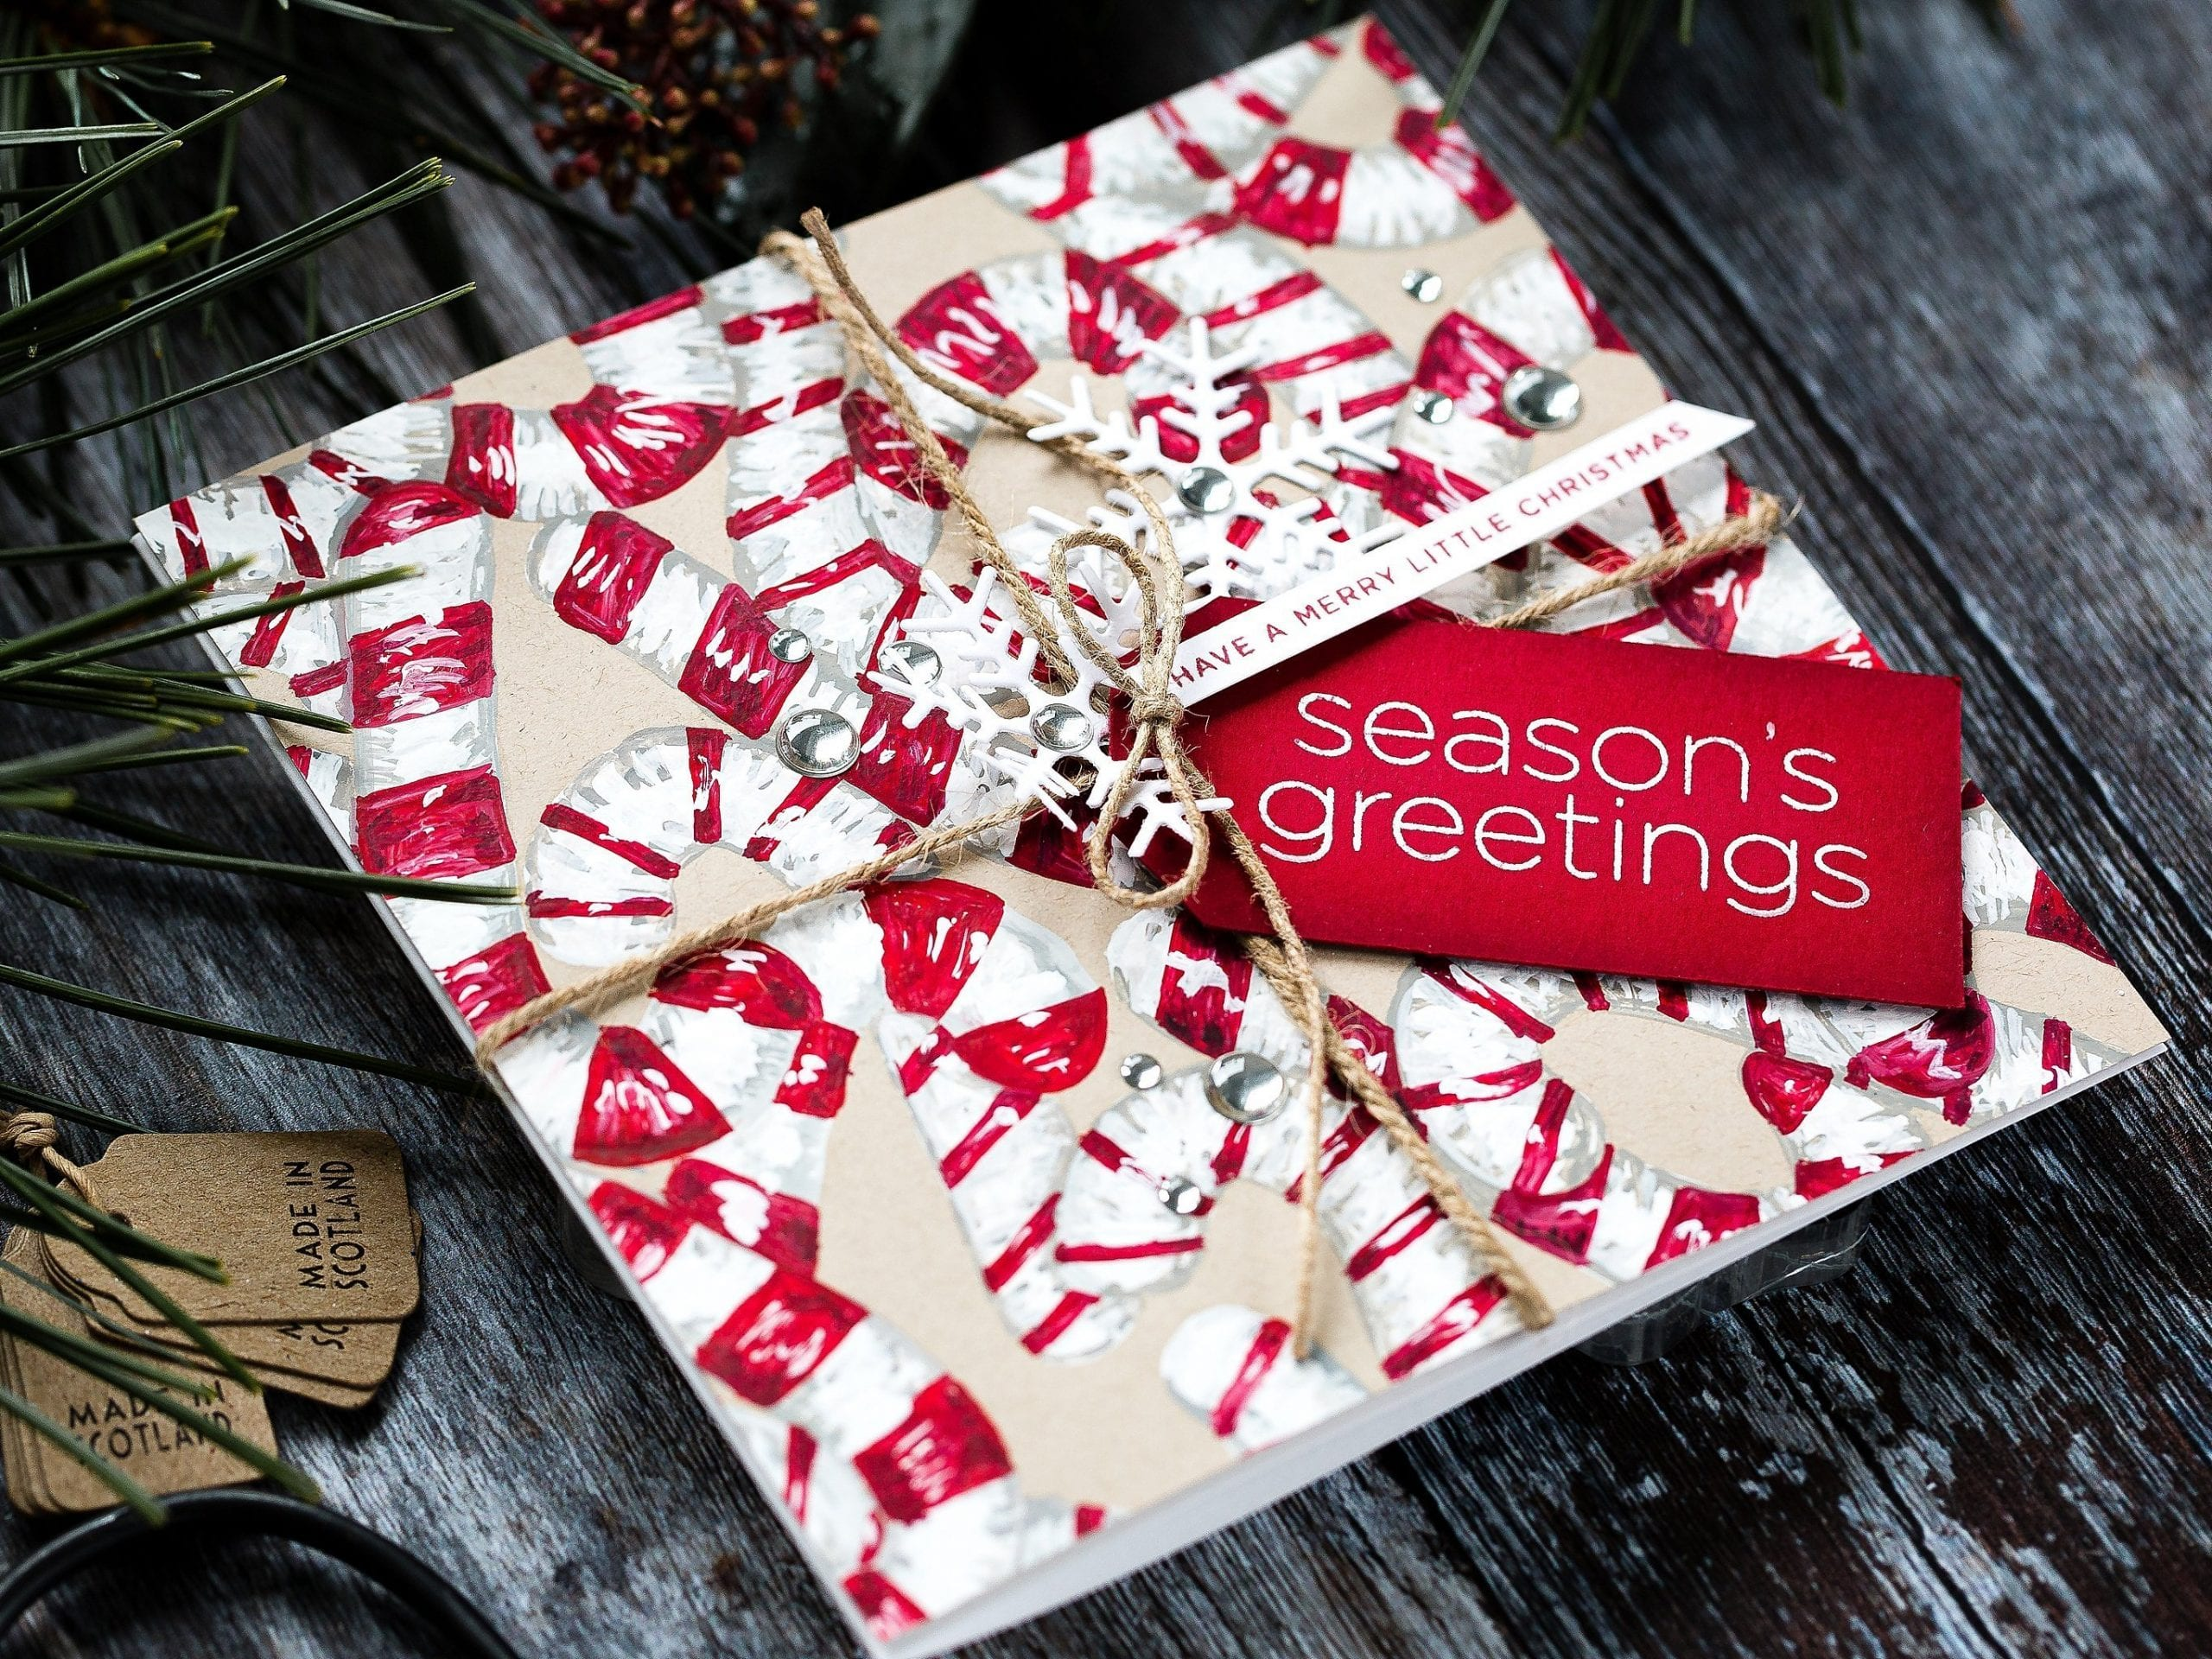 Candy canes on kraft, gouache painted handmade card by Debby Hughes using supplies from Simon Says Stamp and CZ Design.